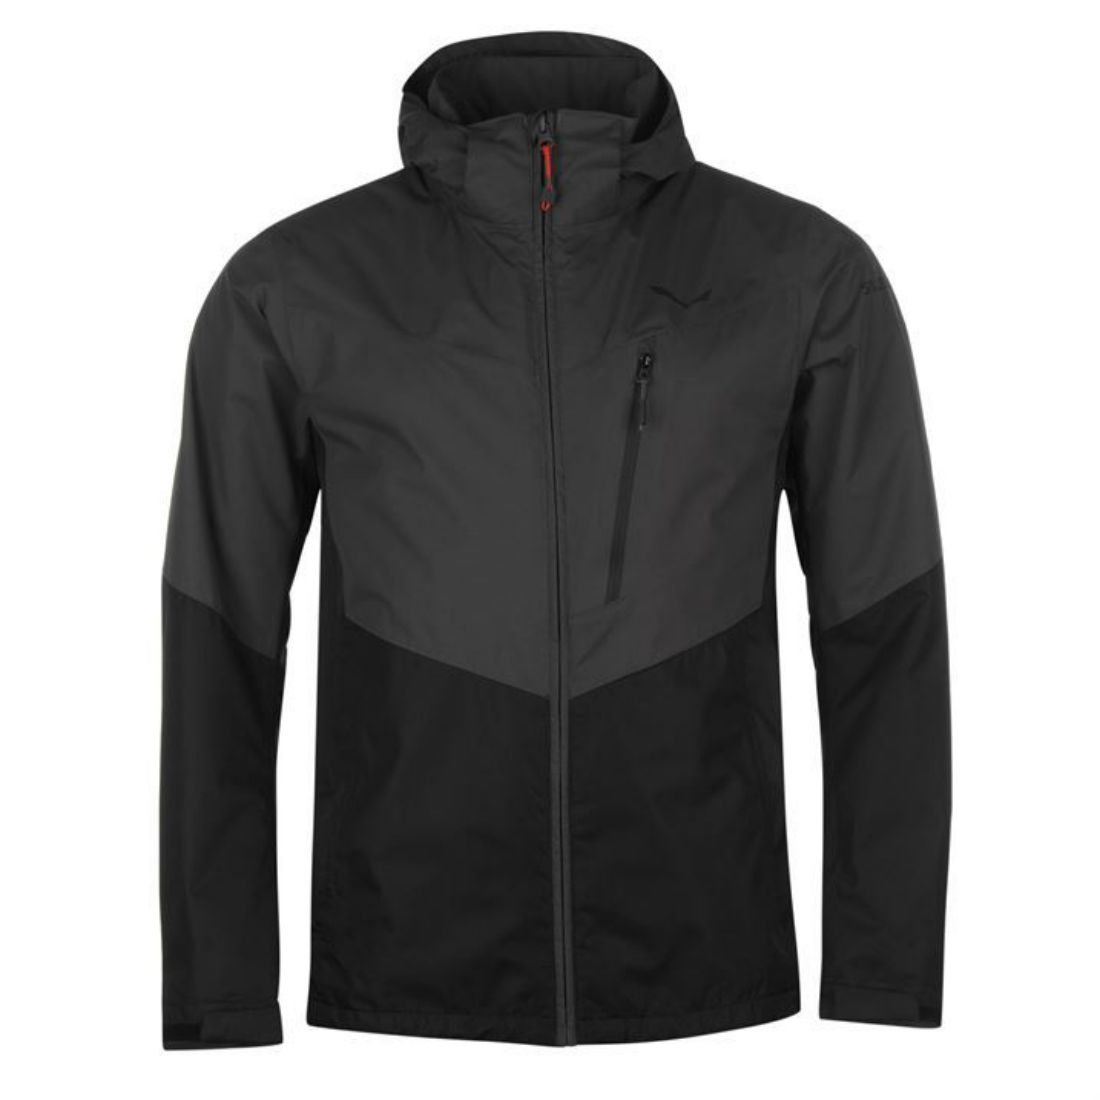 2cfd21664442 Salewa Mens Classic 2 Layer Jacket Waterproof Windproof ...